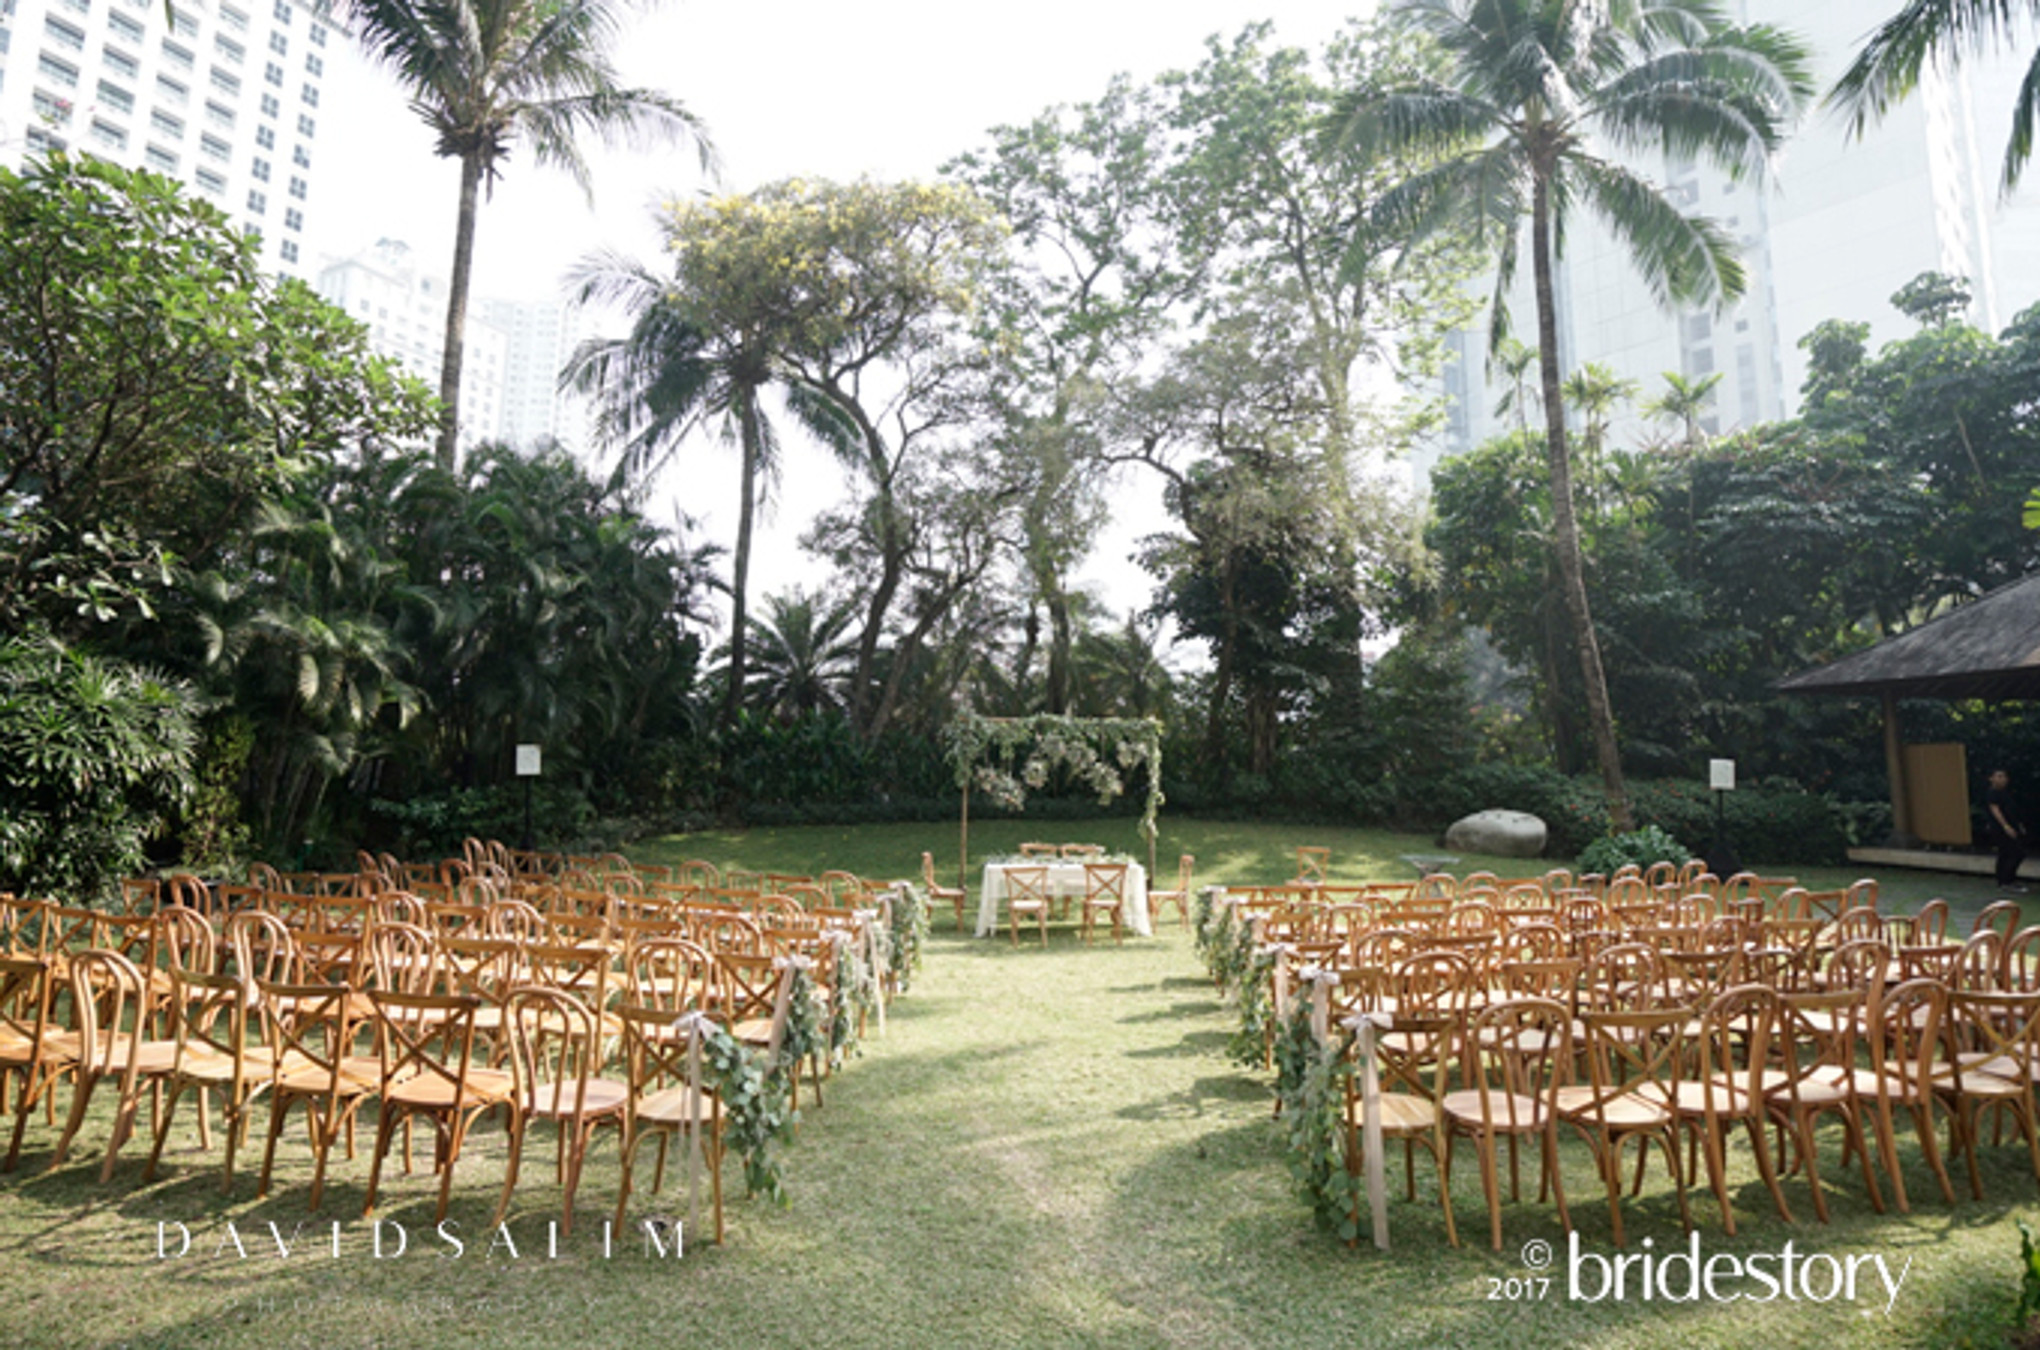 Exclusive! The Wedding of Raisa and Hamish: The Photo Album